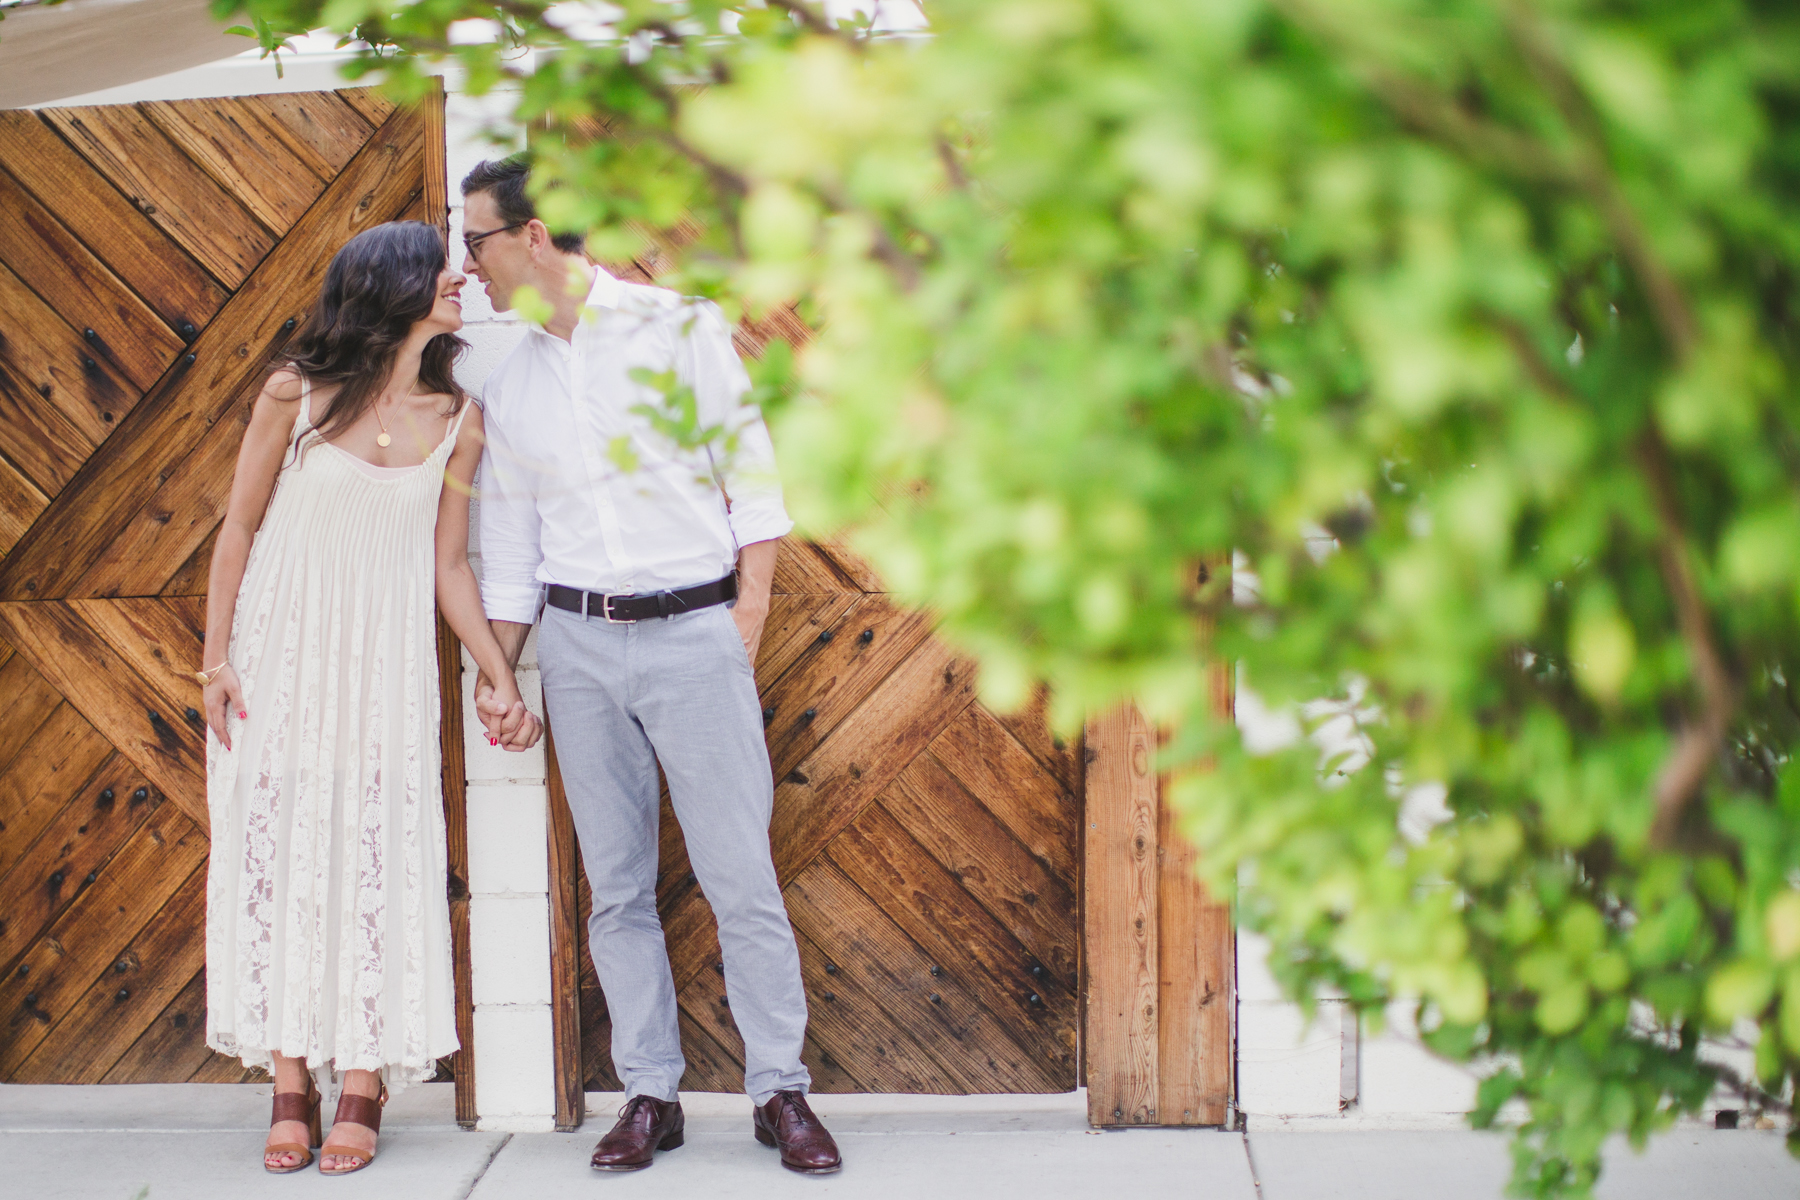 All_Days_Wonder_Palm_Springs_Engagement-35.jpg